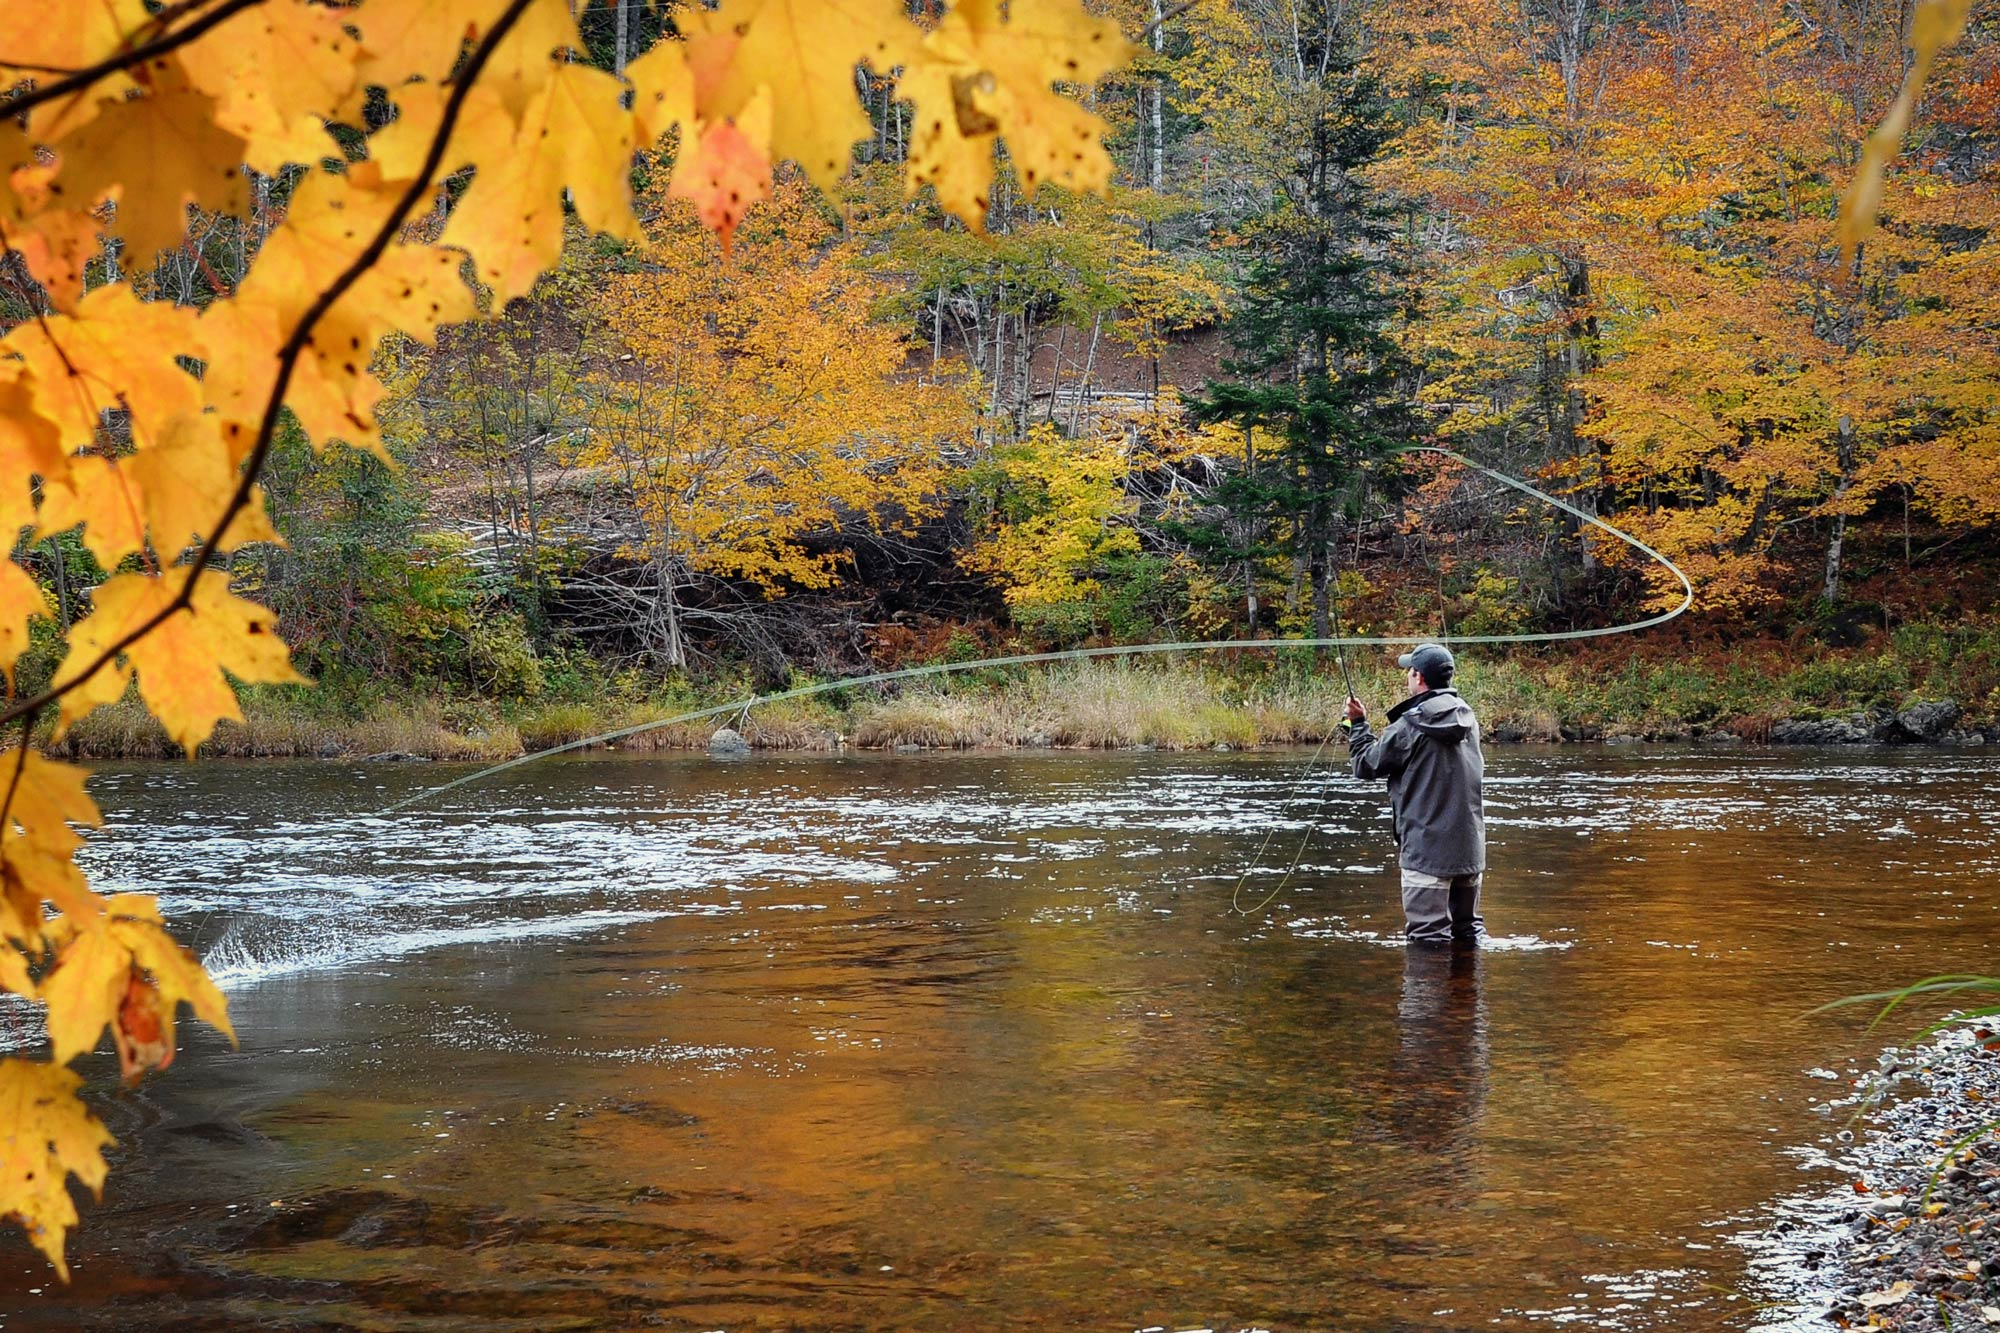 A fly fisherman standing in the river mid-cast, surrounded by autumn foliage